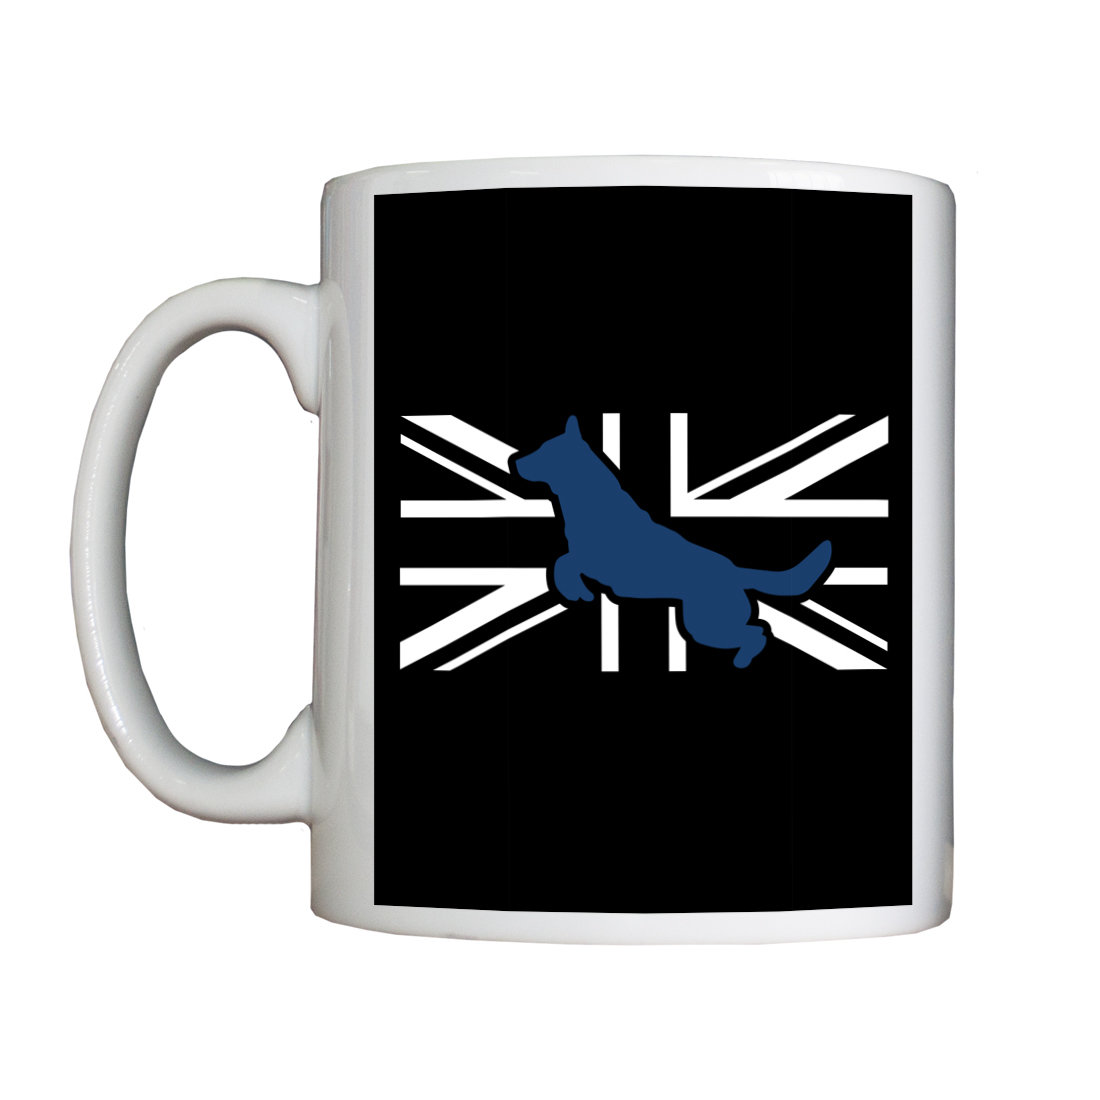 Personalised 'Flag LandShark' Drinking Vessel FlagLandSharkMUG